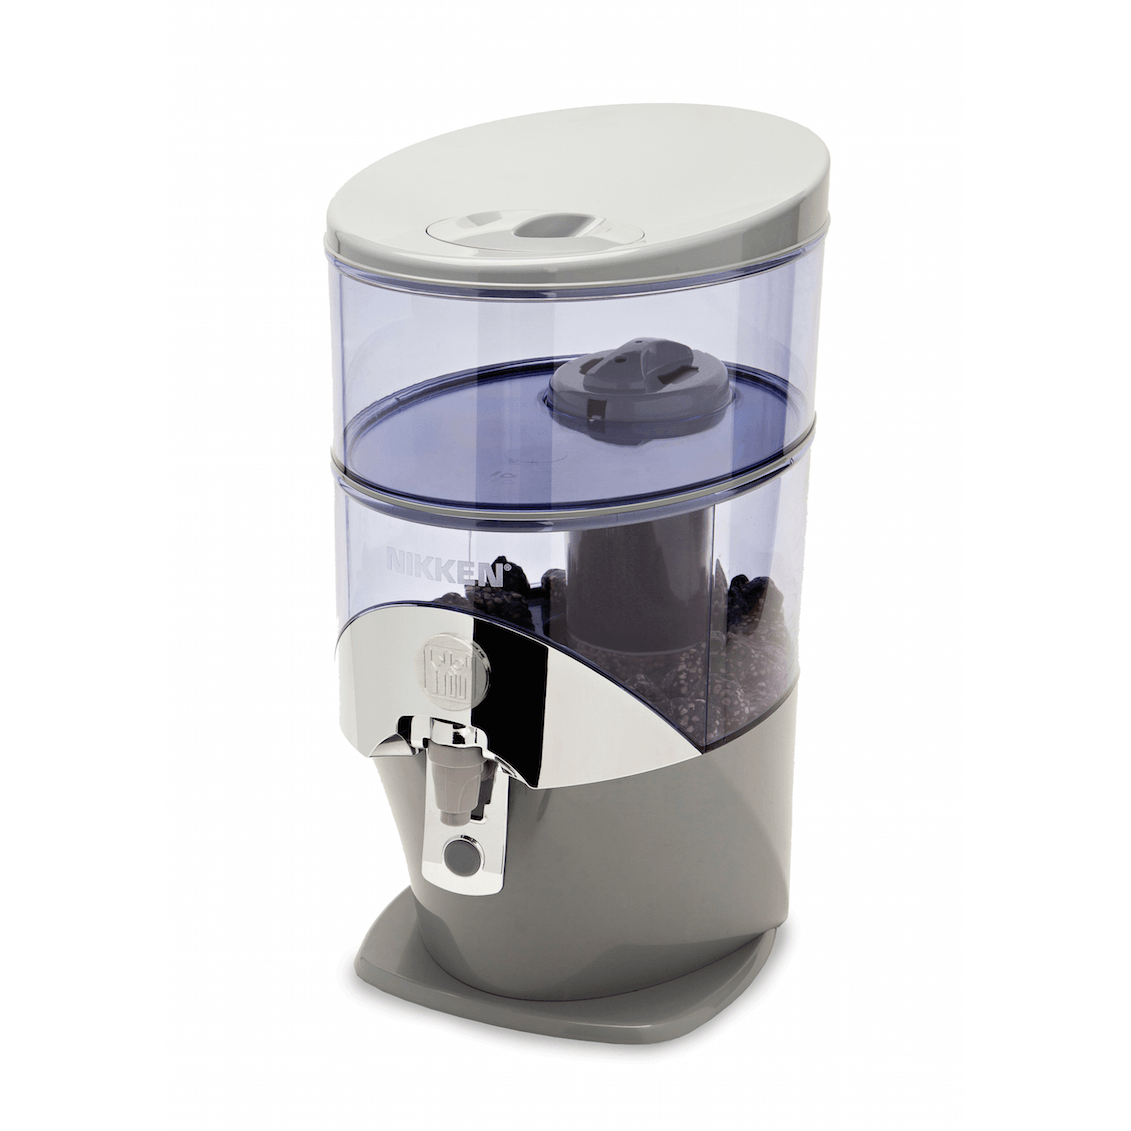 PiMag Waterfall water filter system